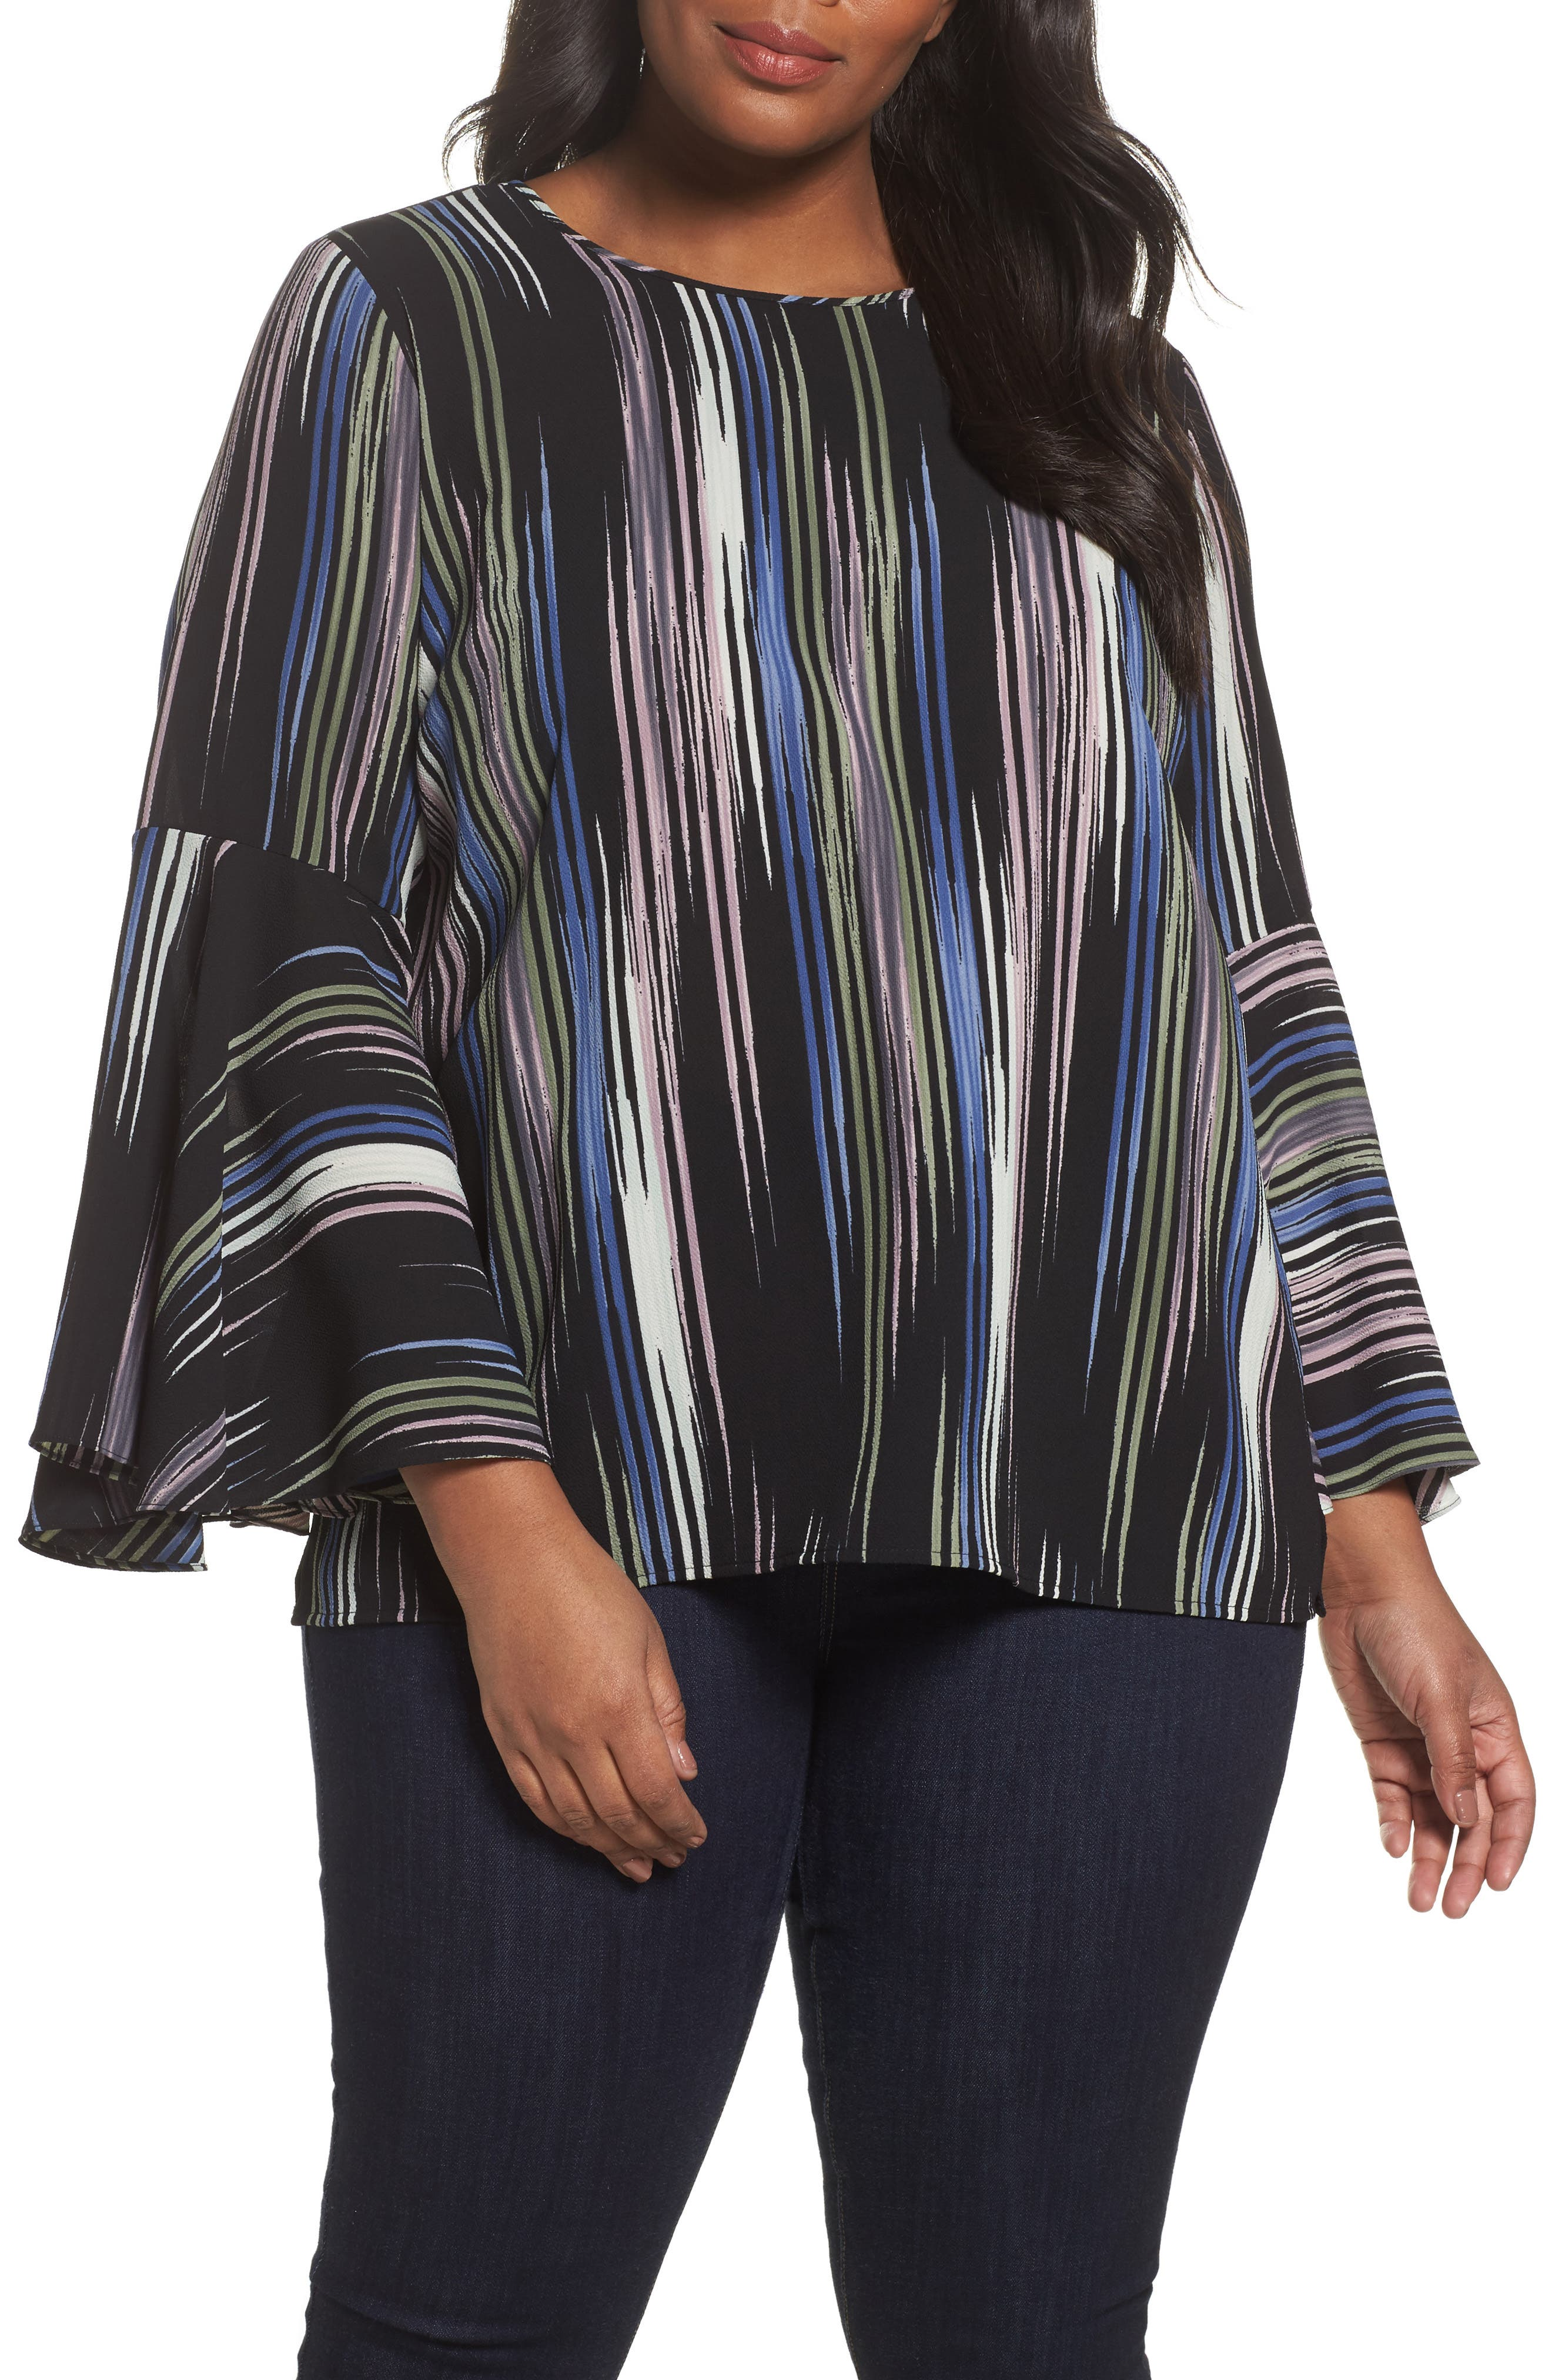 Main Image - Vince Camuto Bell Sleeve Colorful Peak Blouse (Plus Size)